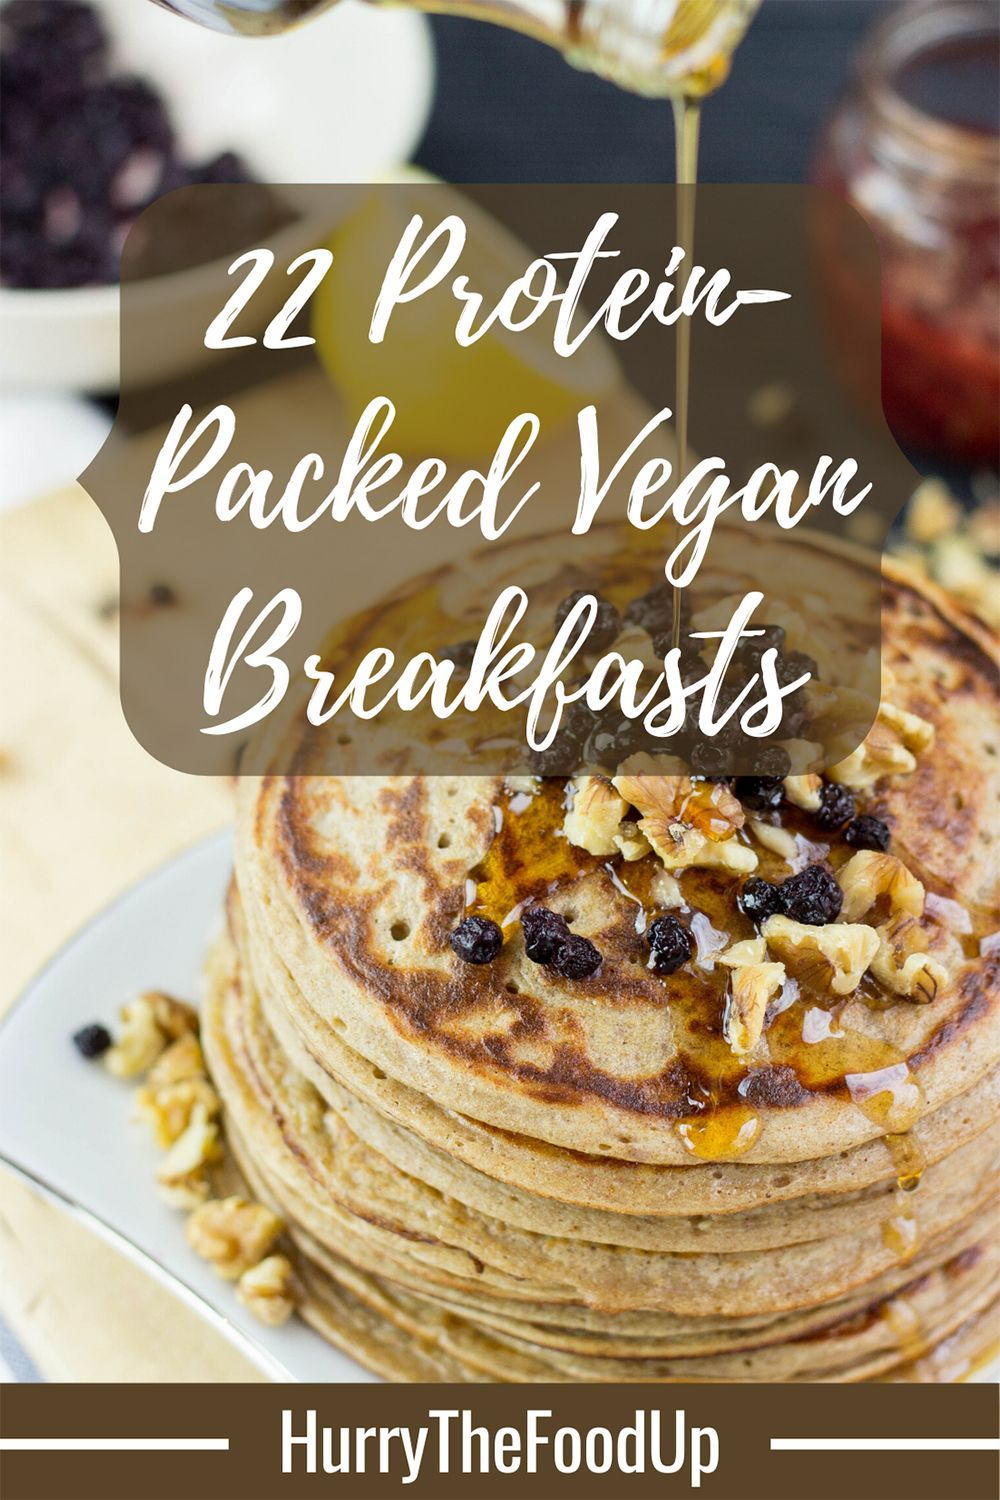 22 High Protein Vegan Breakfasts Recipe In 2020 High Protein Vegan High Protein Vegan Breakfast Vegan Breakfast Recipes